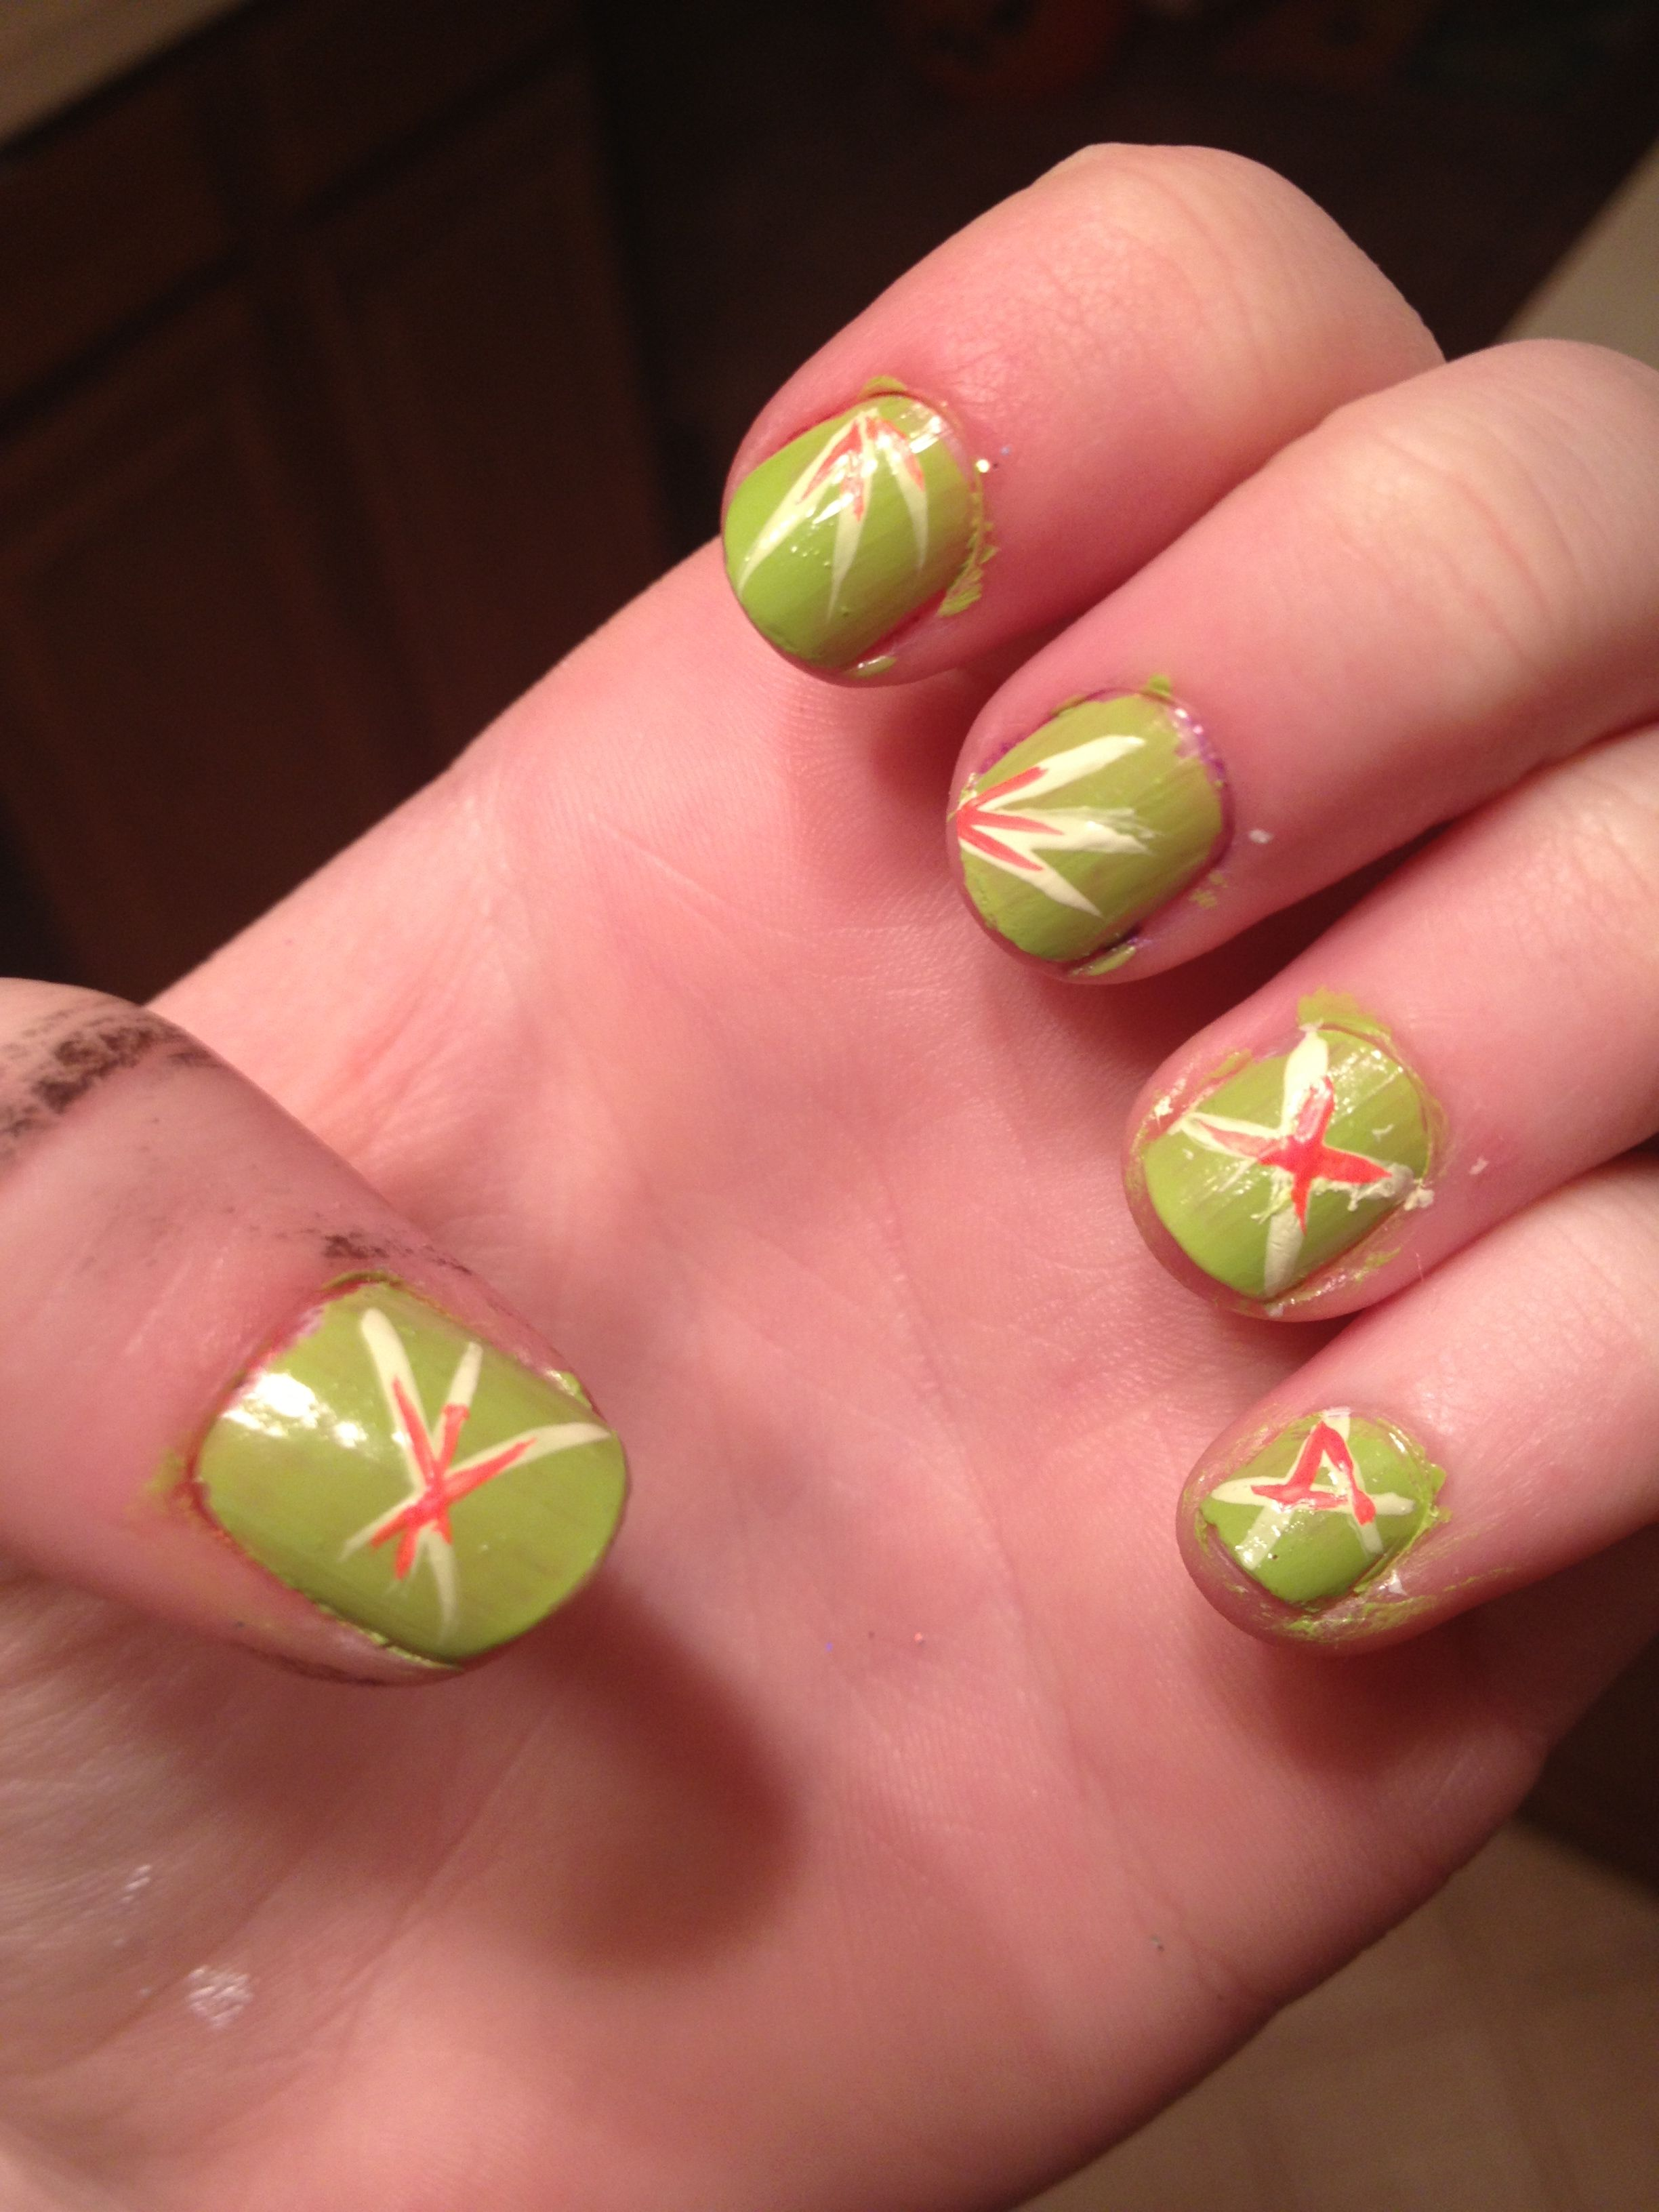 Weeeee finally finished my nails